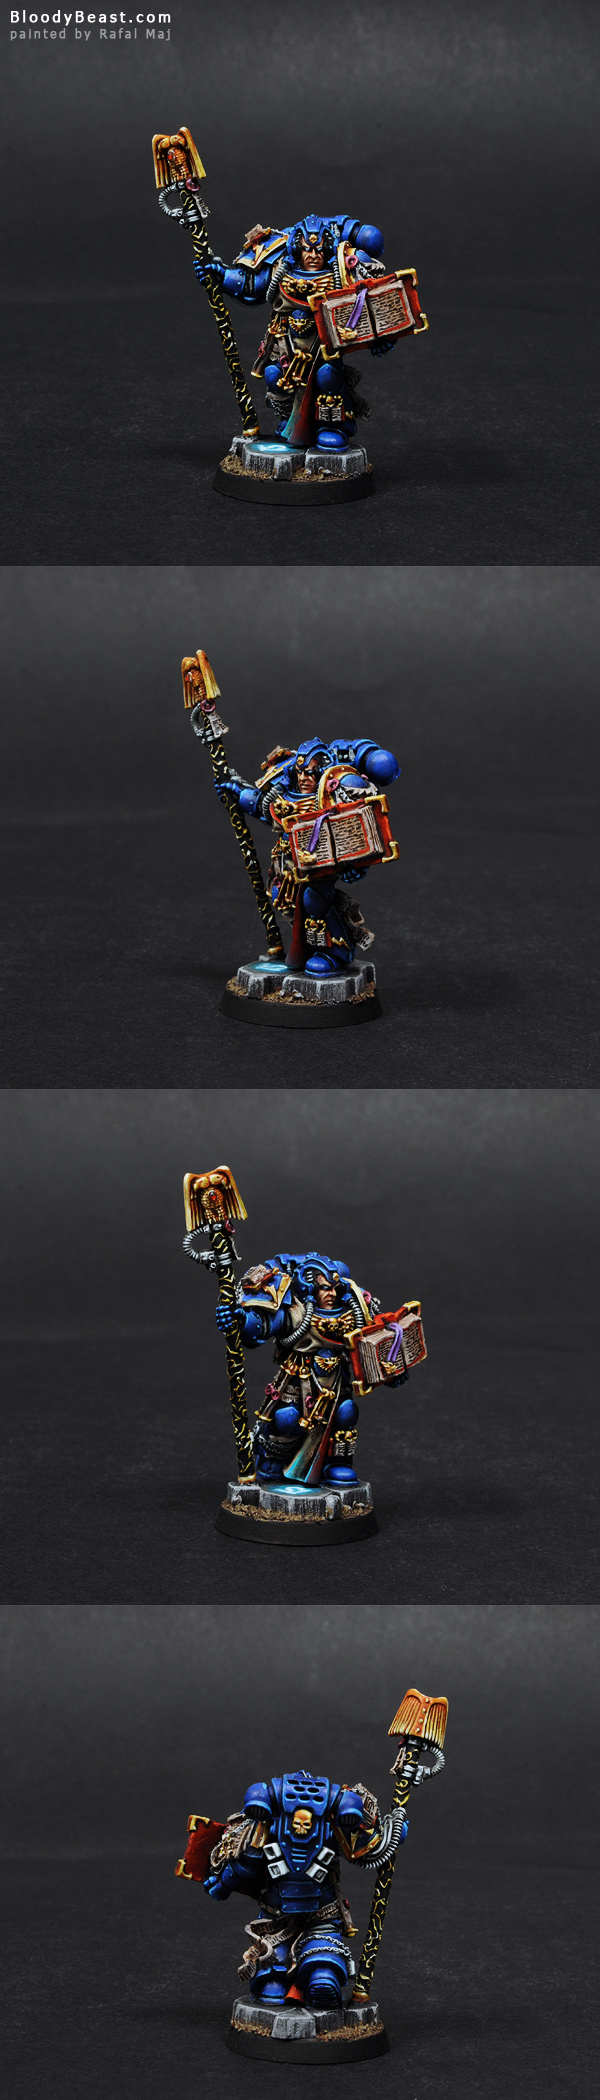 Space Marine Librarian with Staff & Book painted by Rafal Maj (BloodyBeast.com)